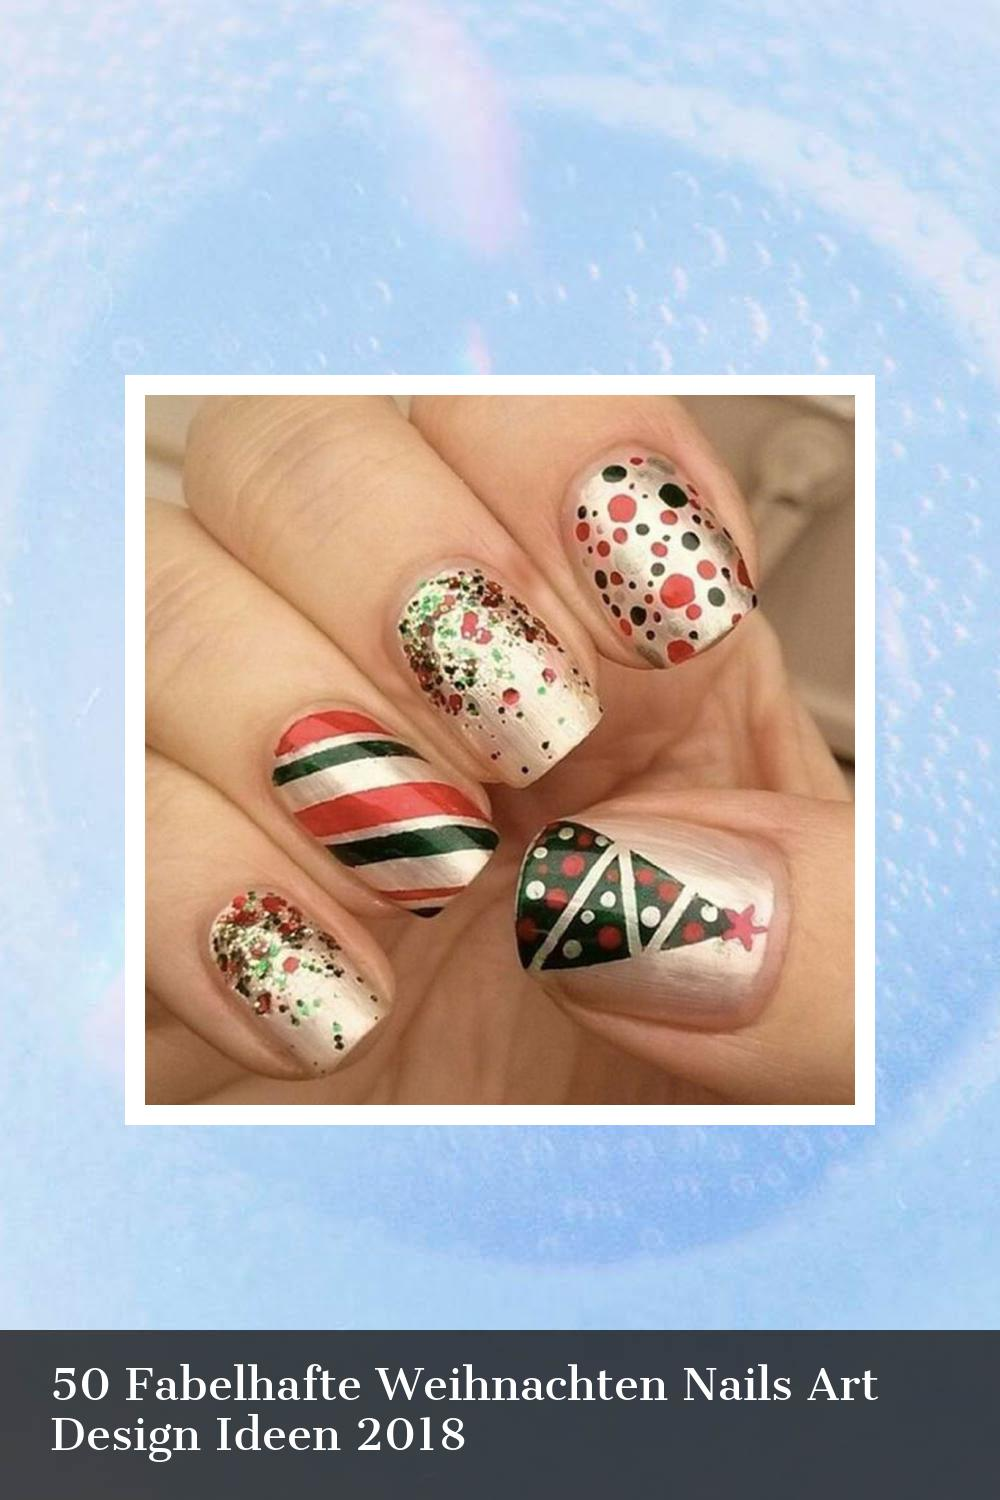 50 Fabelhafte Weihnachten Nails Art Design Ideen 2018 15